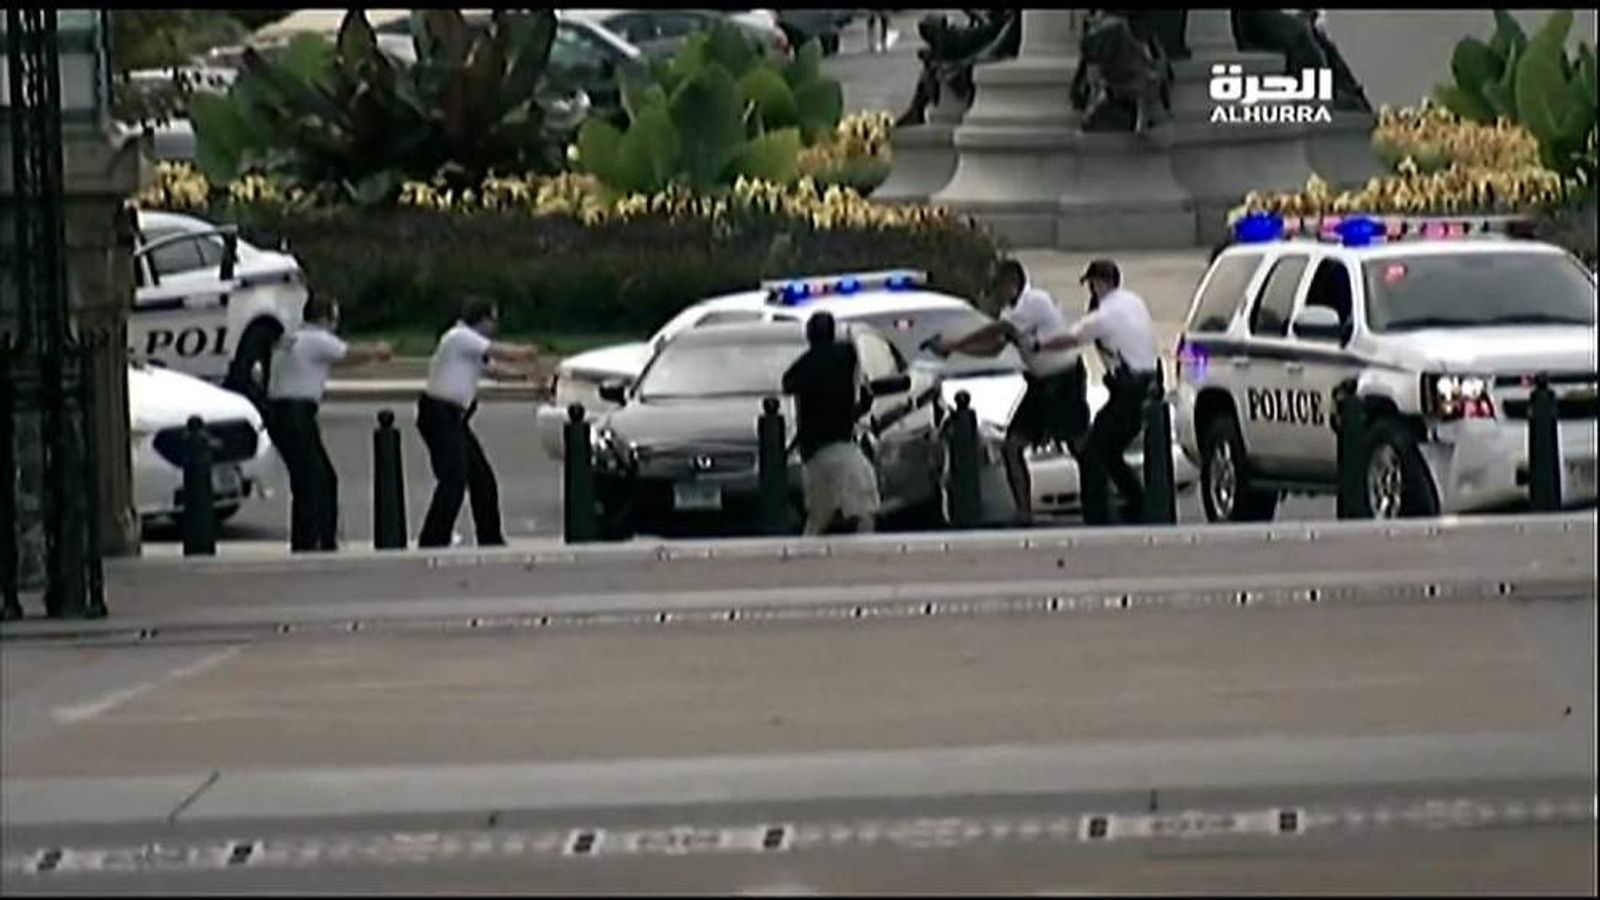 Capitol Car chase